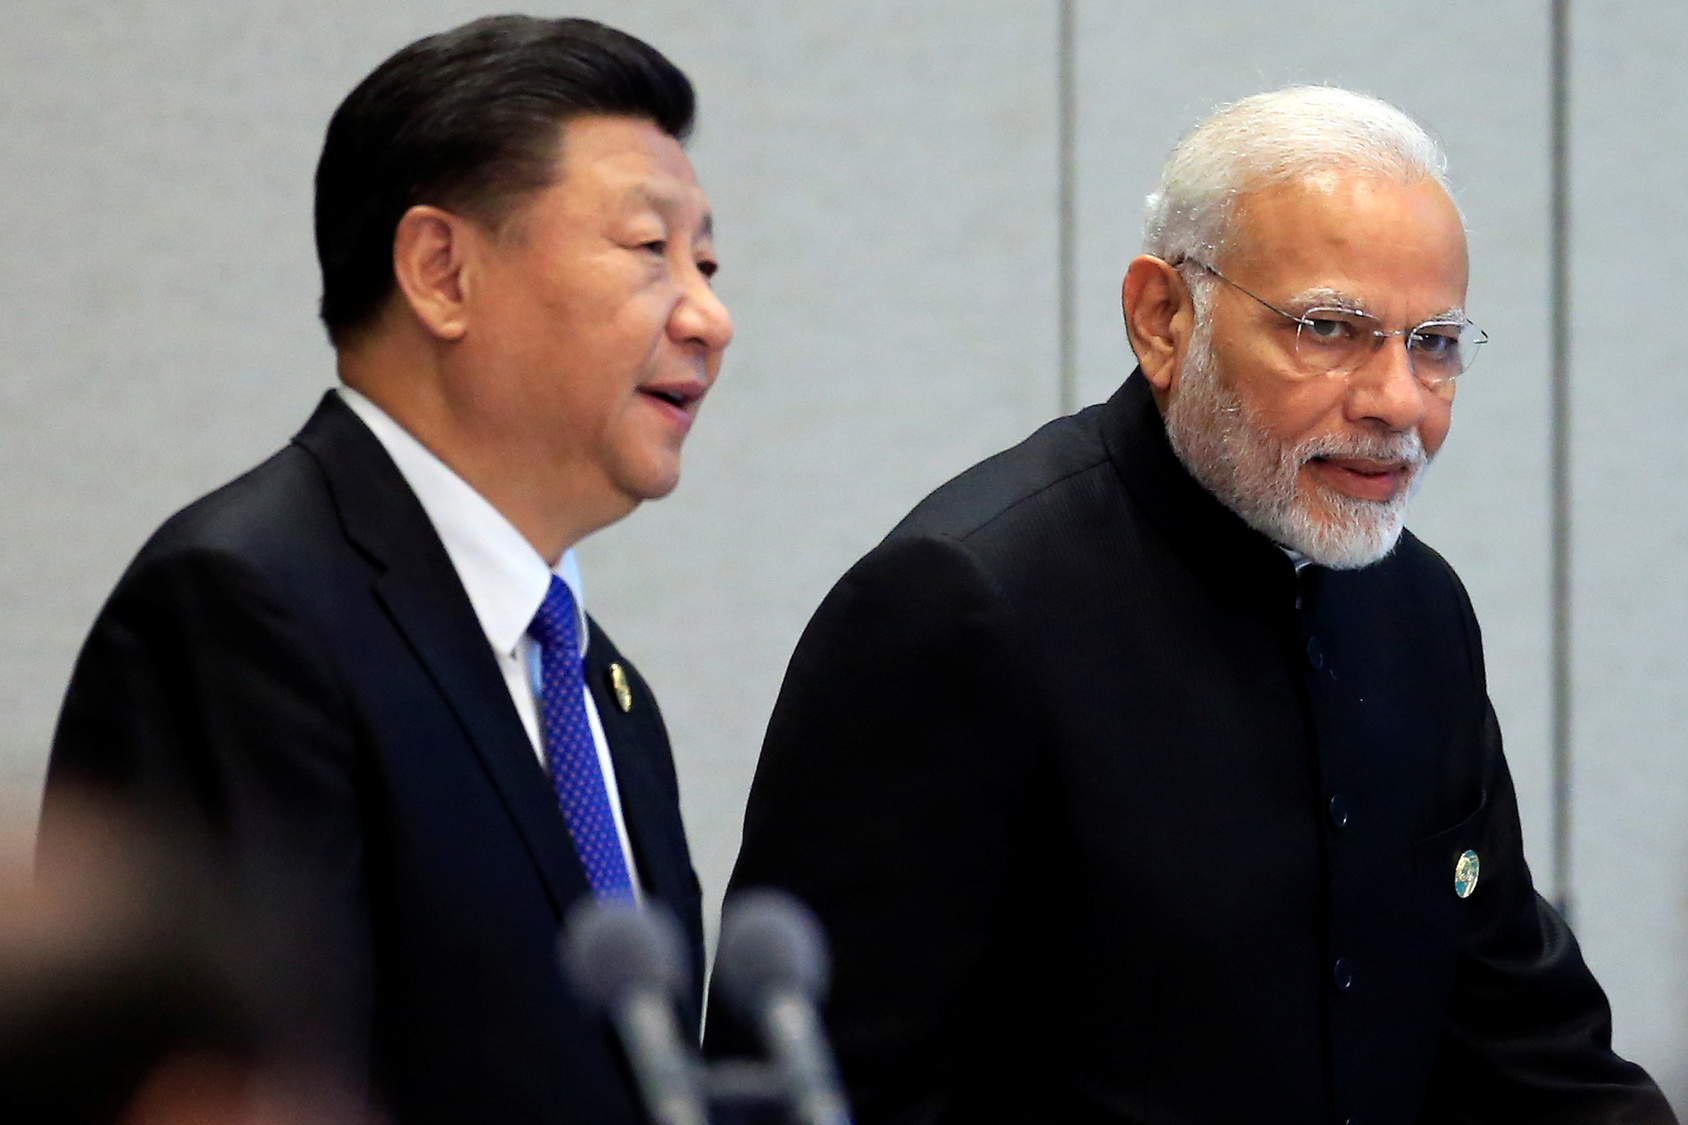 China's President Xi Jinping and India's Prime Minister Narendra Modi together in June 2018. Photo: Reuters / Aly Song